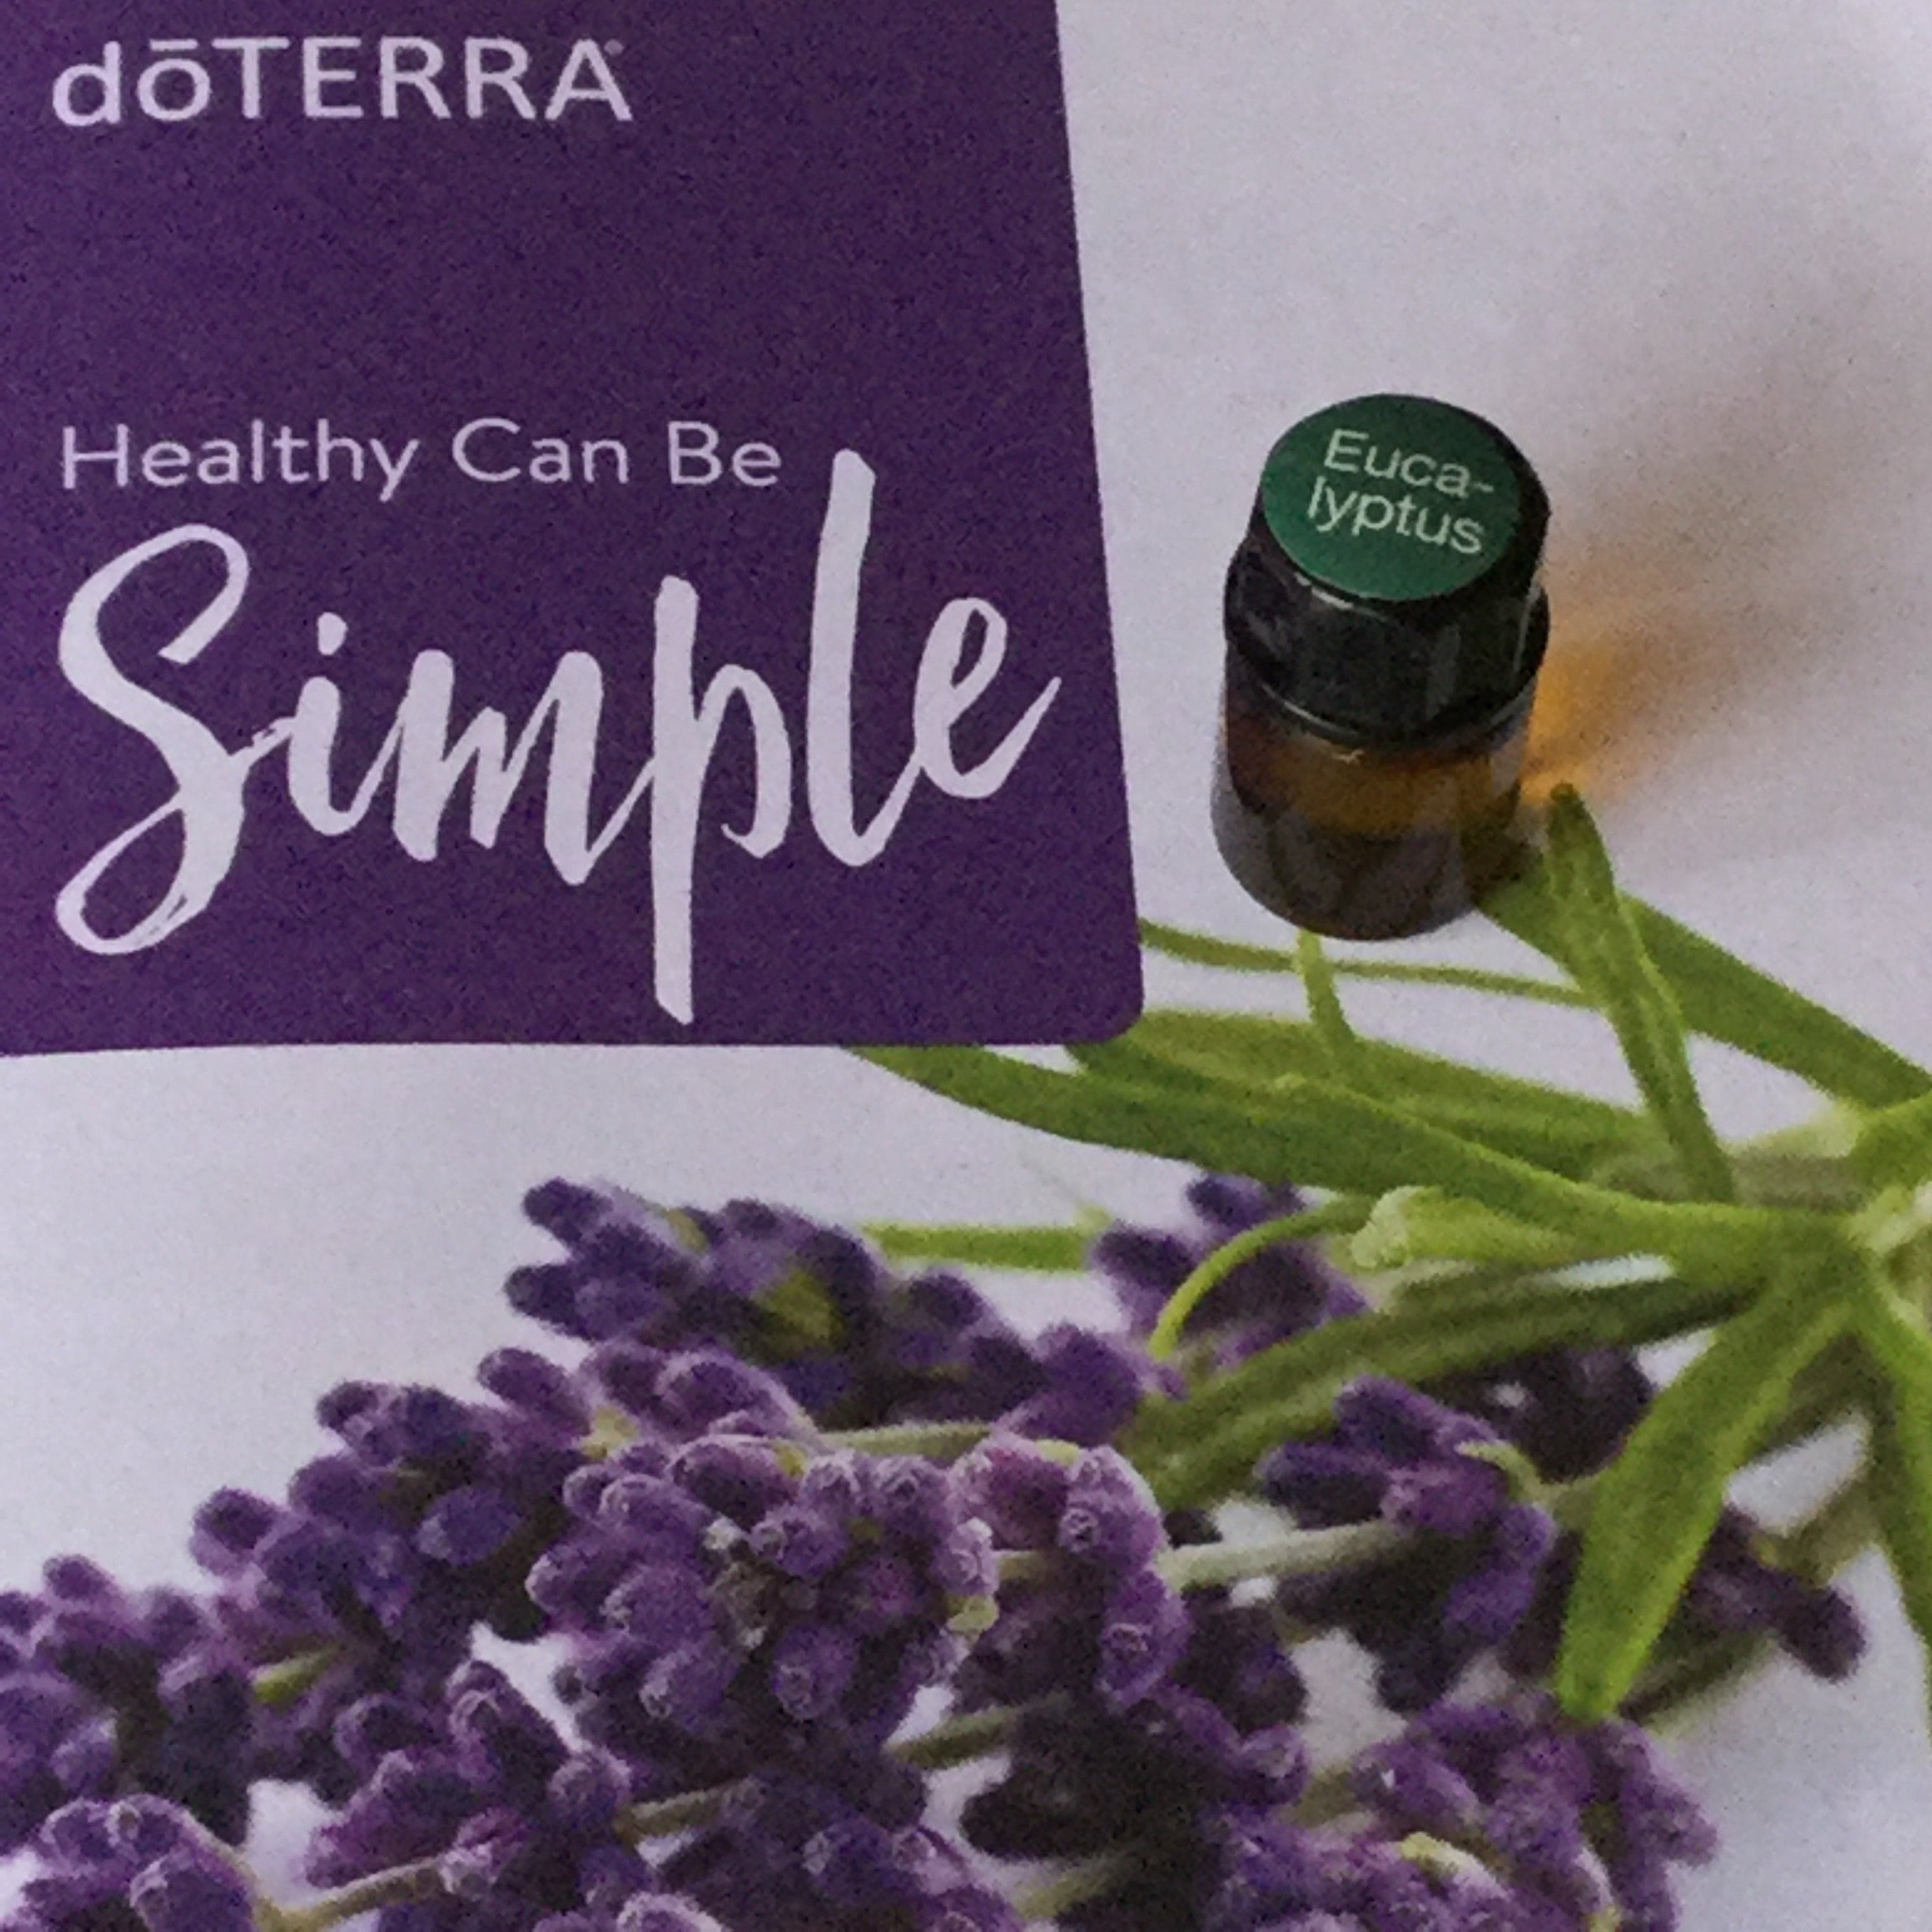 Oil: 2ml Eucalyptus dōTerra Essential Oil